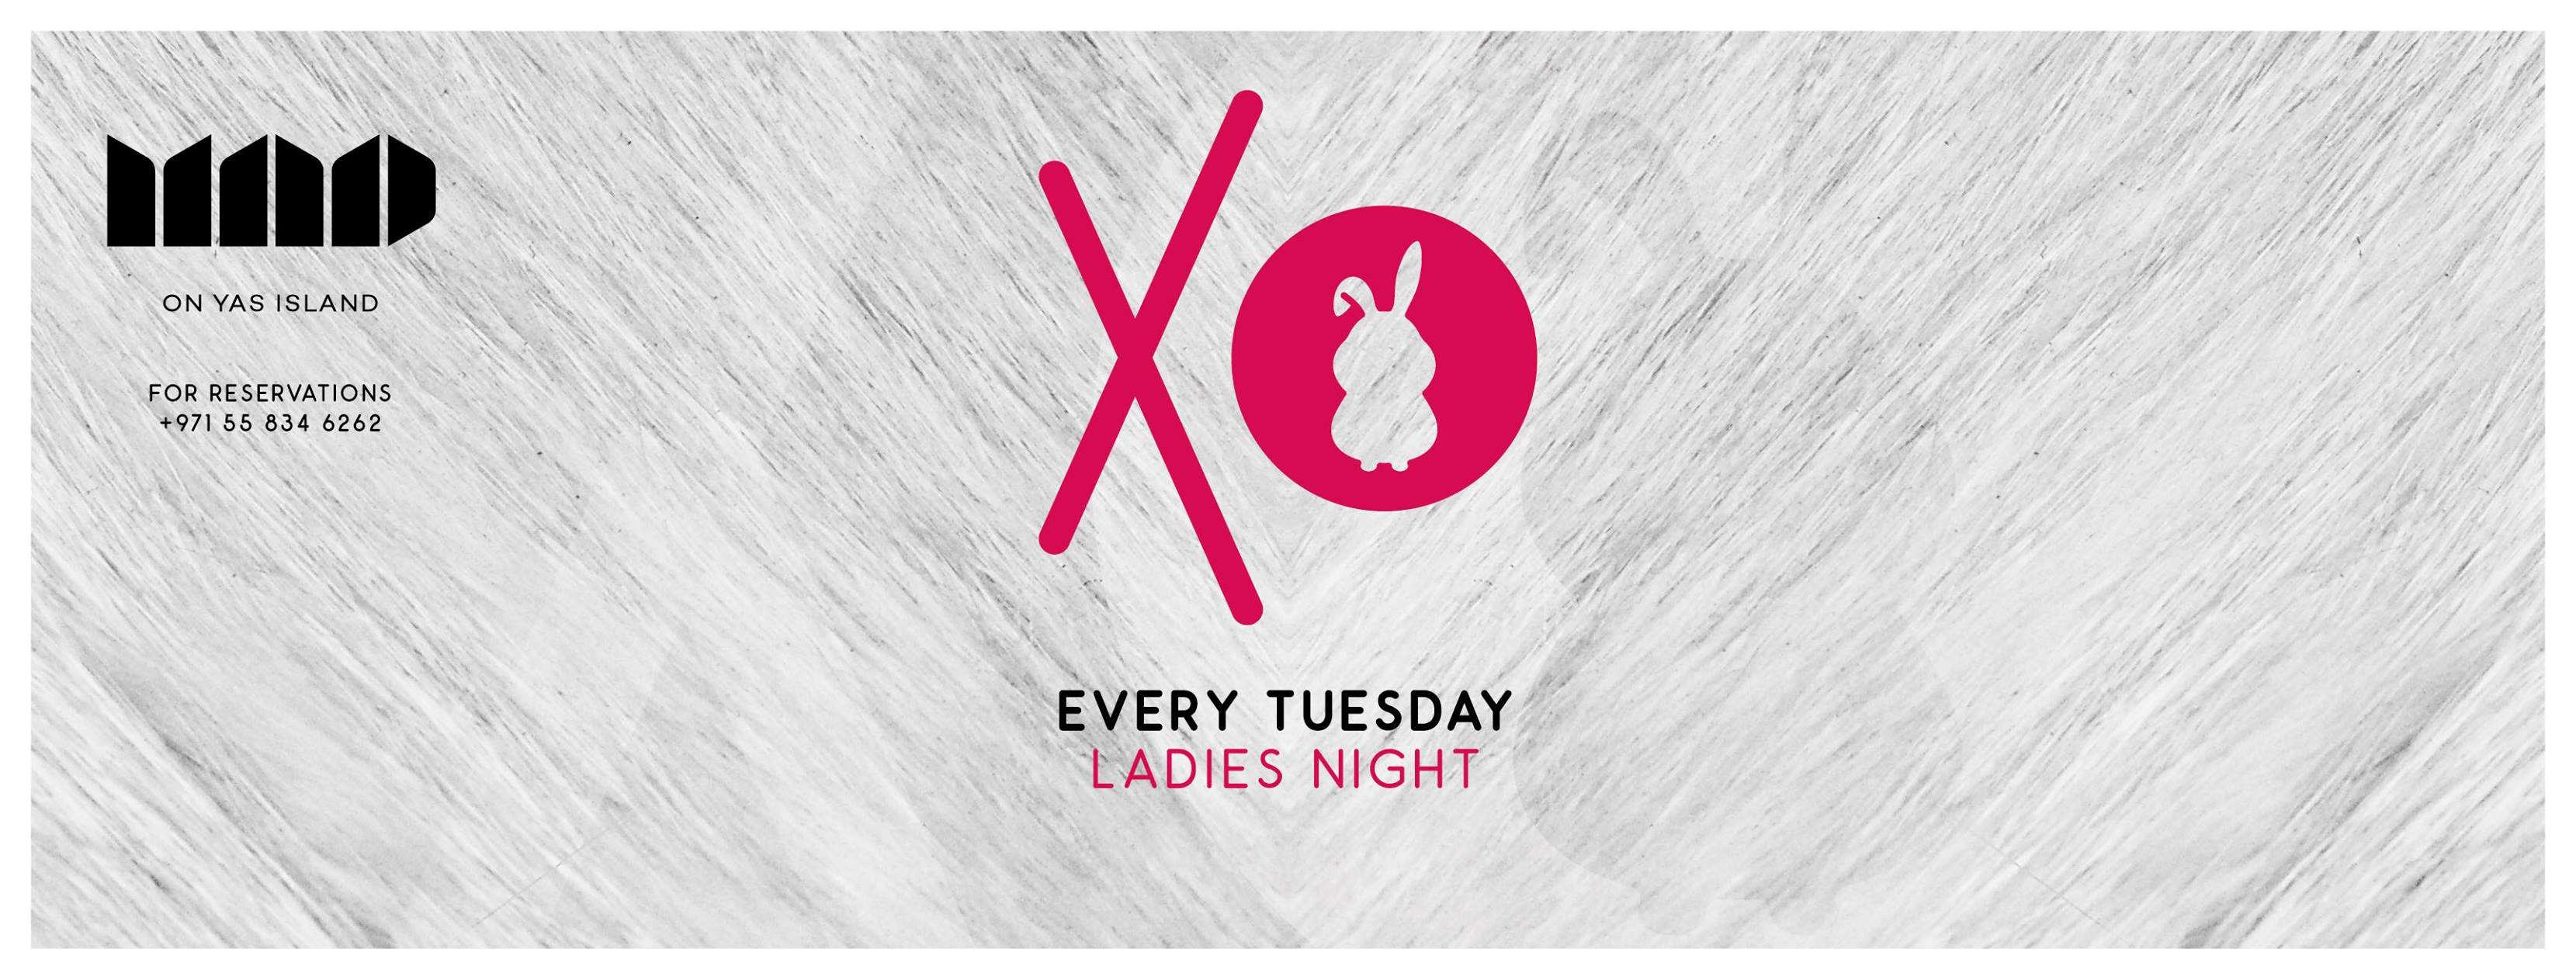 XO Tuesdays @ MAD on Yas Island